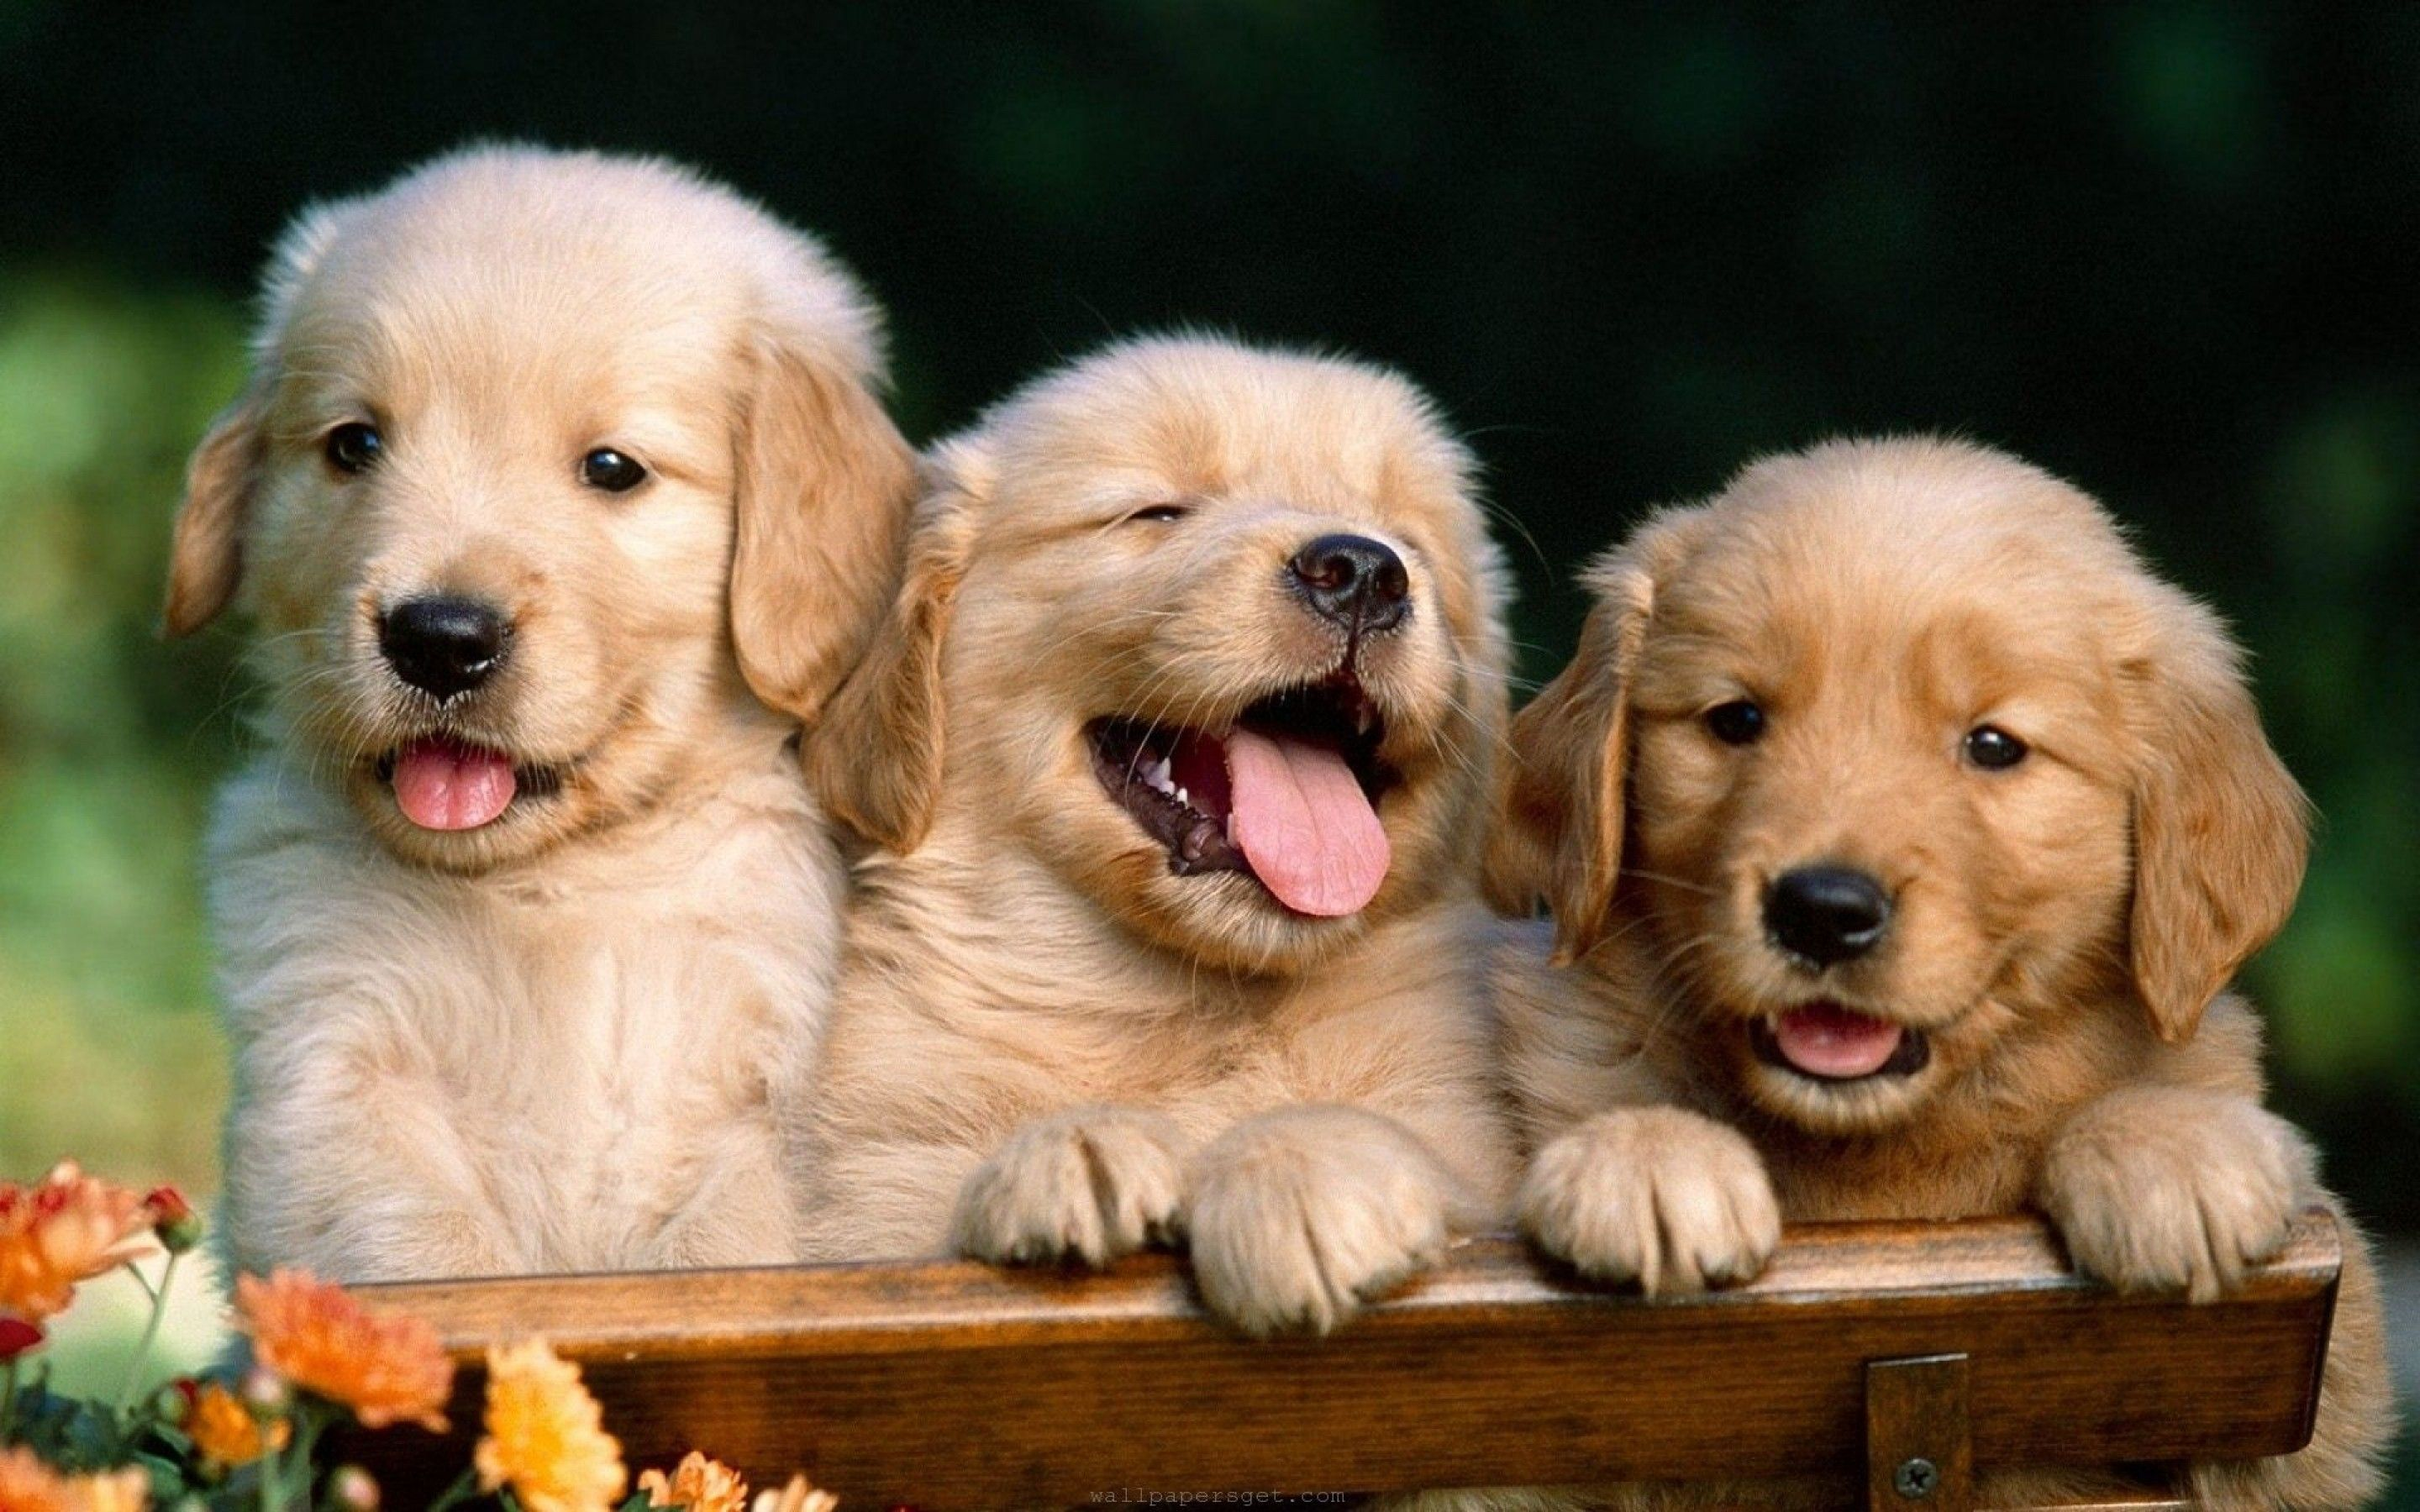 dog wallpapers hd puppy wallpaper free dog wallpapers | wallpapers